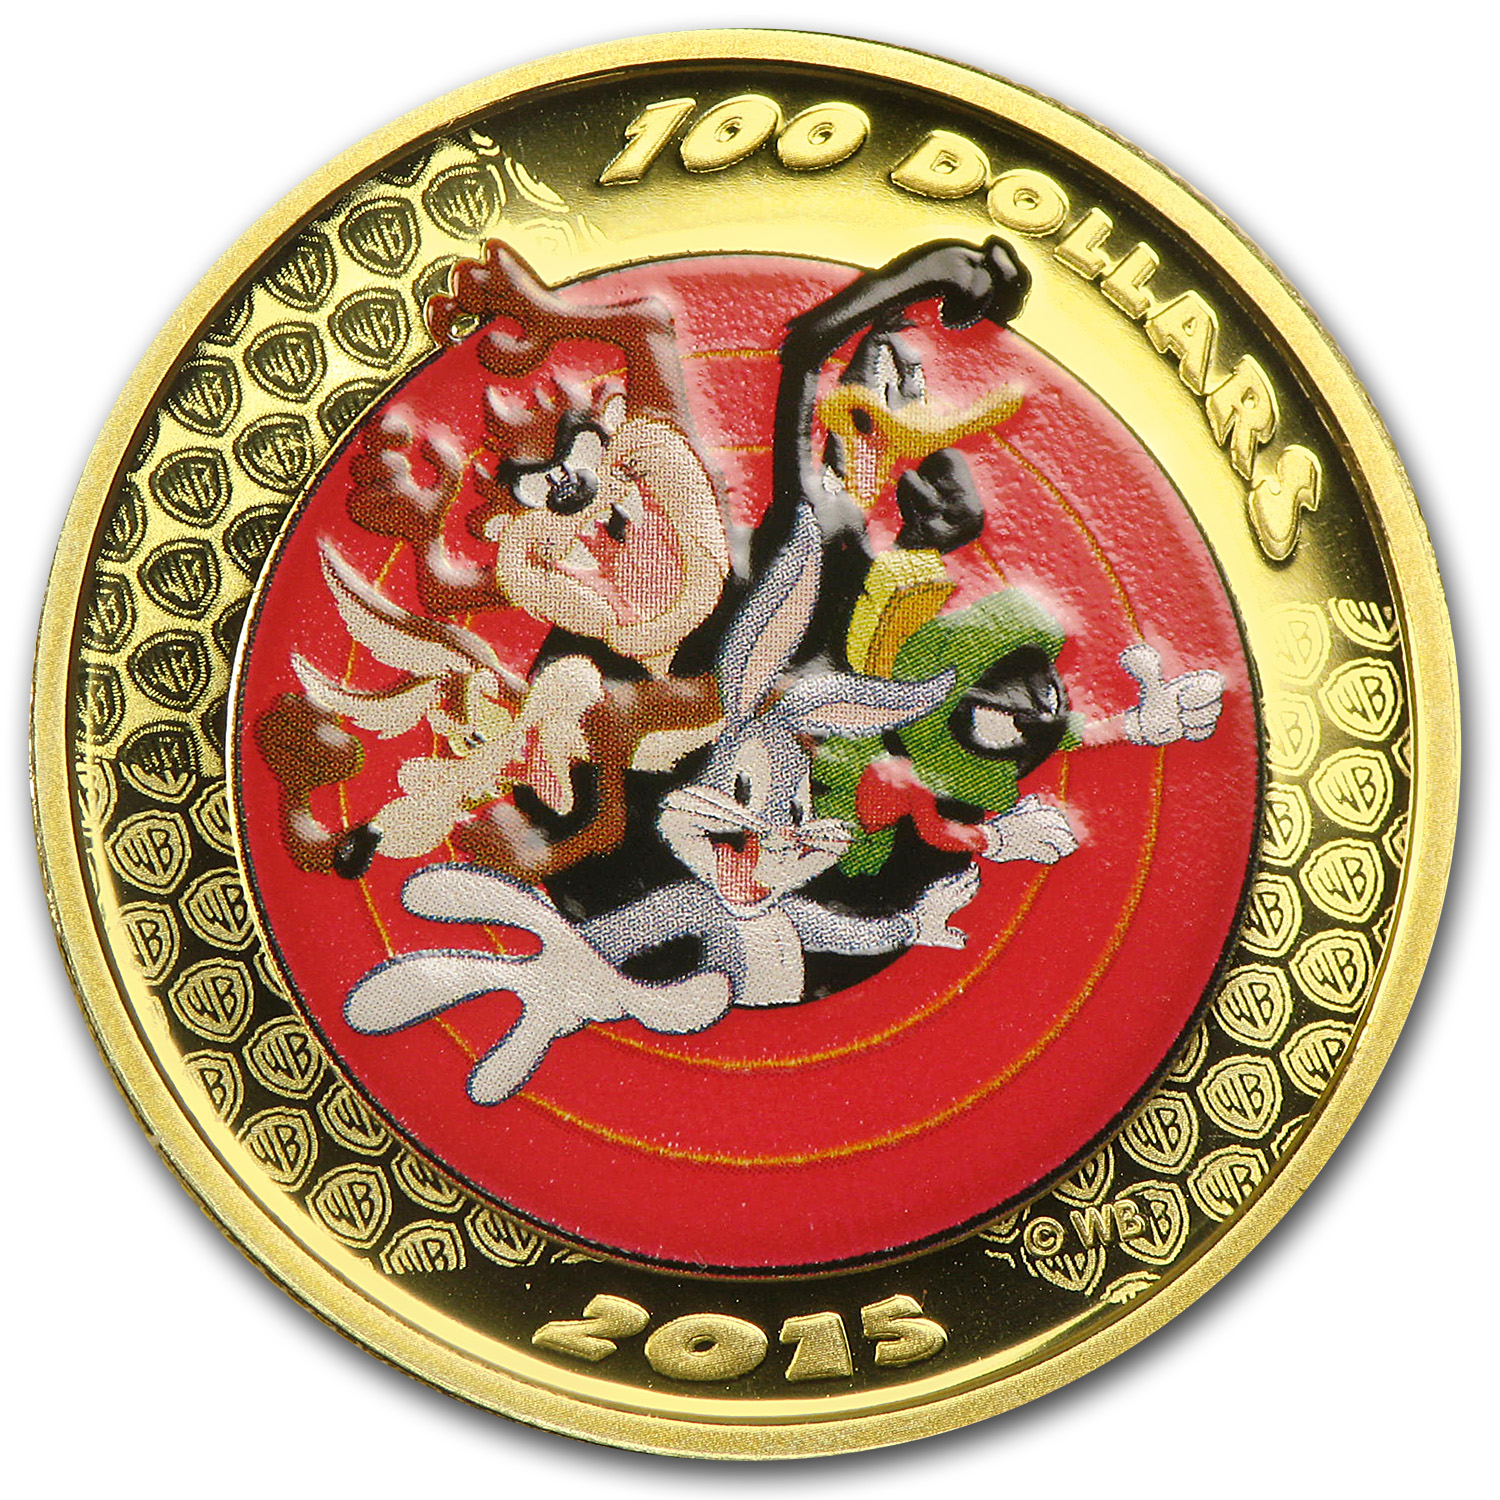 2015 Canada $100 Proof Gold Looney Tunes Bugs Bunny & Friends